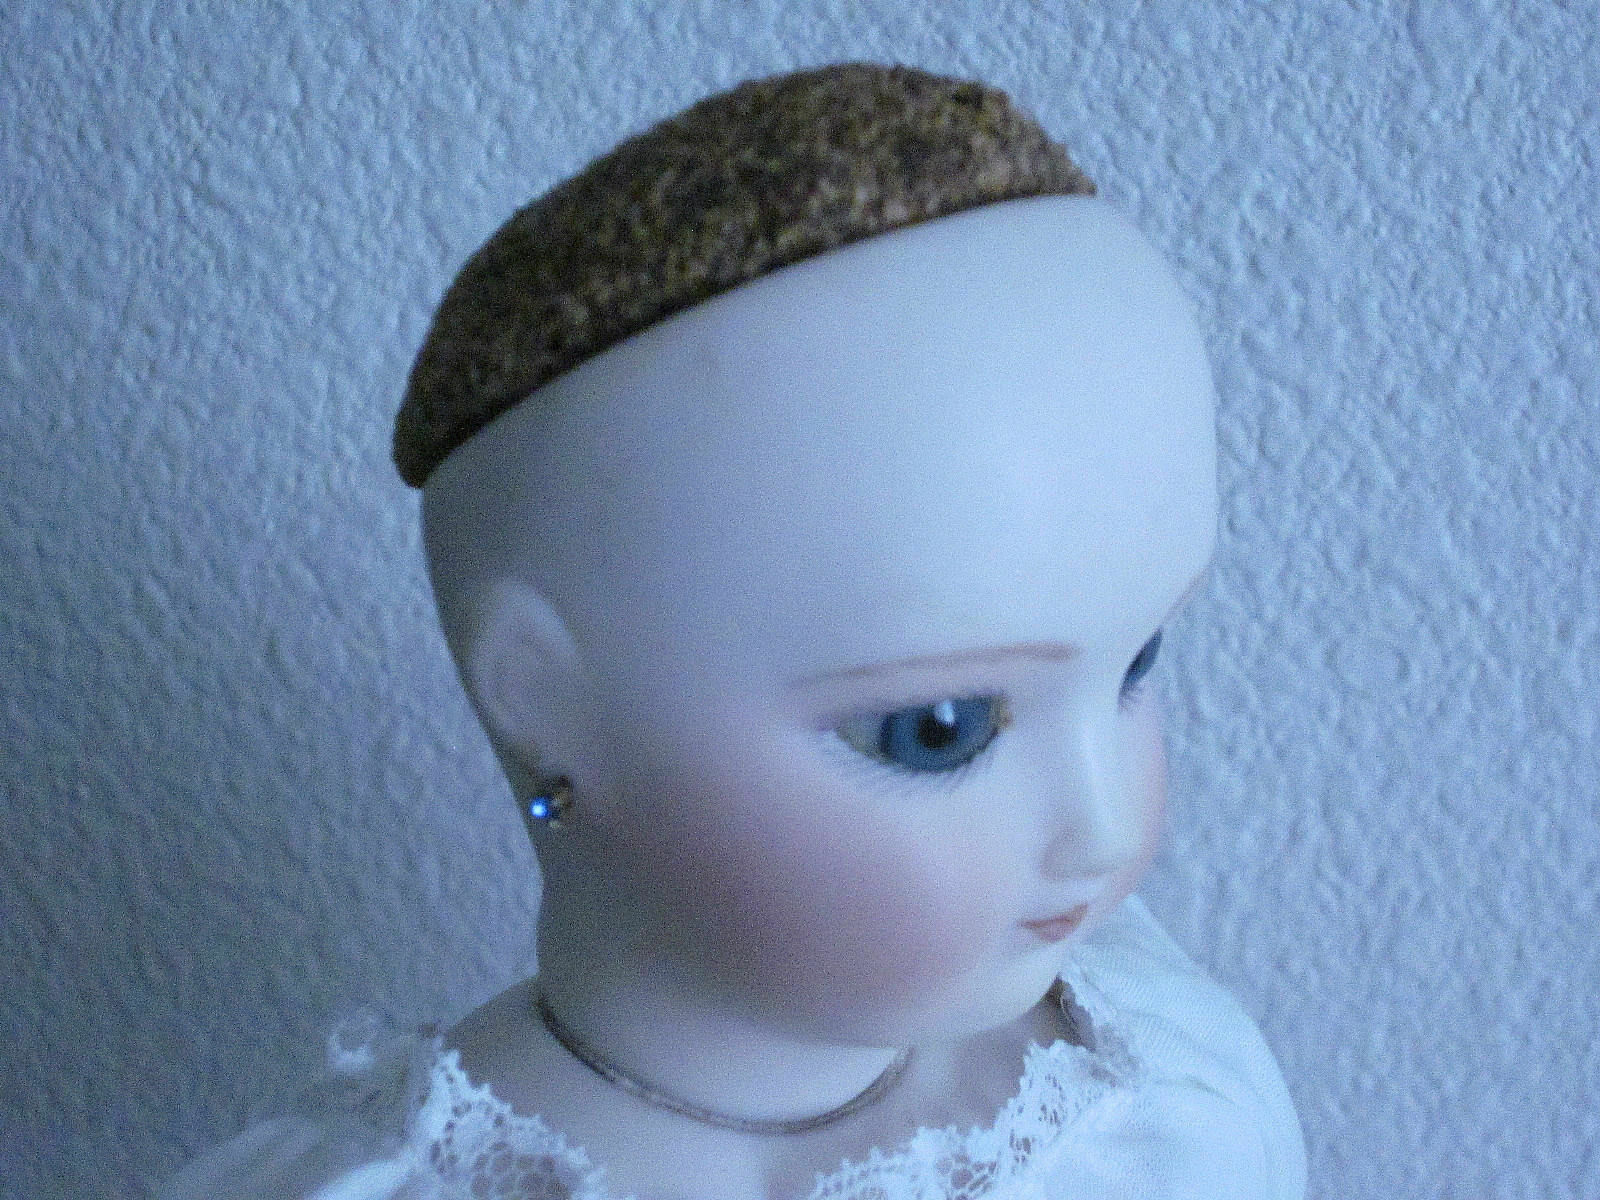 Cork Pate For Antique Doll With Open Head 1 6/8 X 1 1/2 45mm X 41mm  - $8.15